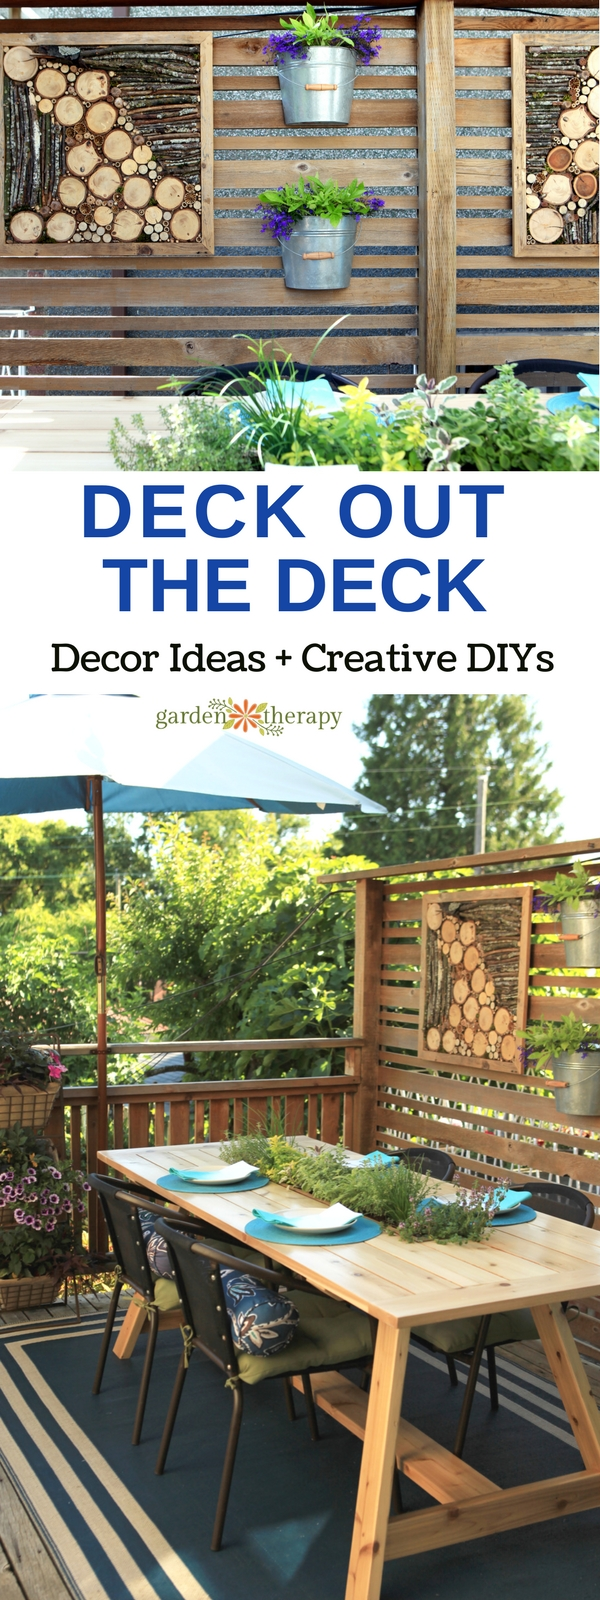 Deck Out Your Deck with these ideas